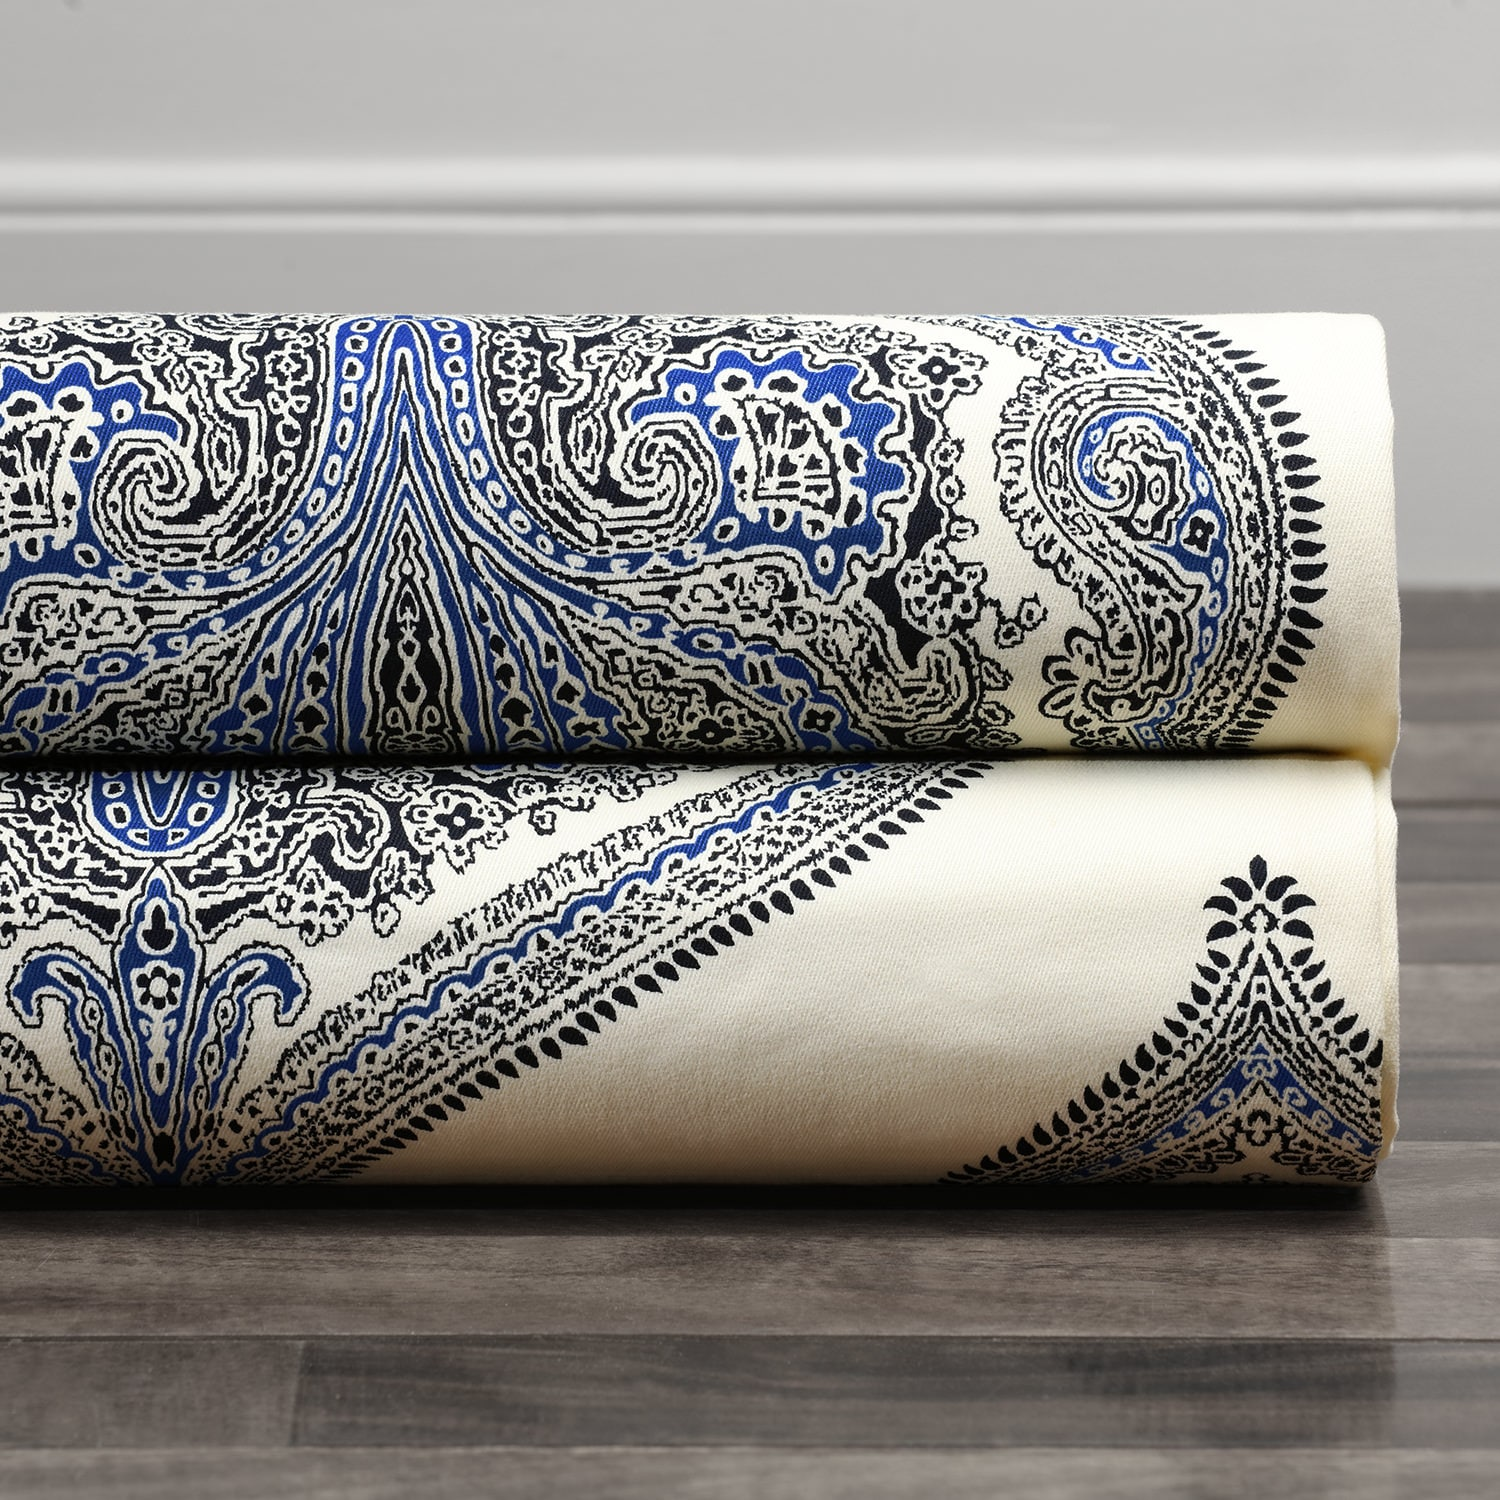 Arabesque Blue Printed Cotton Twill Fabric